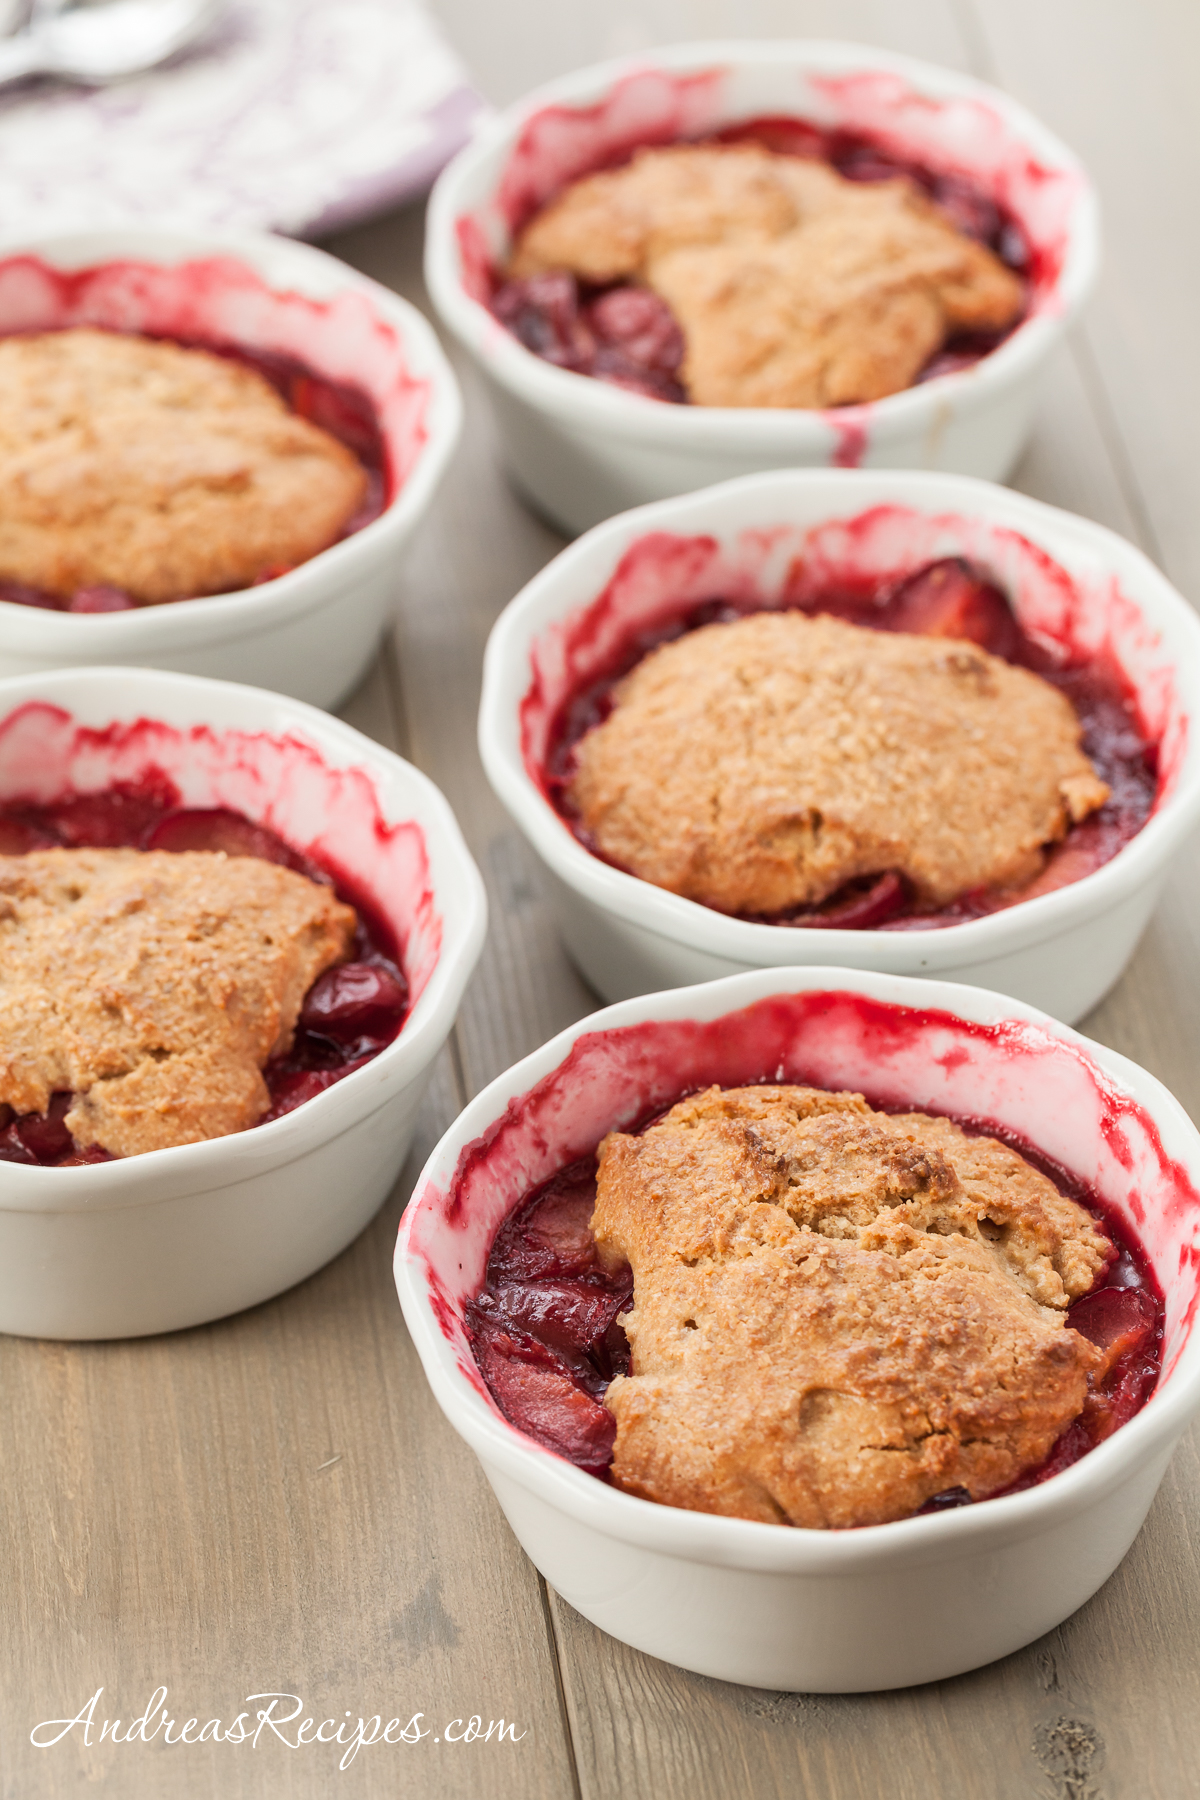 Plum Cobbler with Whole Grain Biscuits - Andrea Meyers